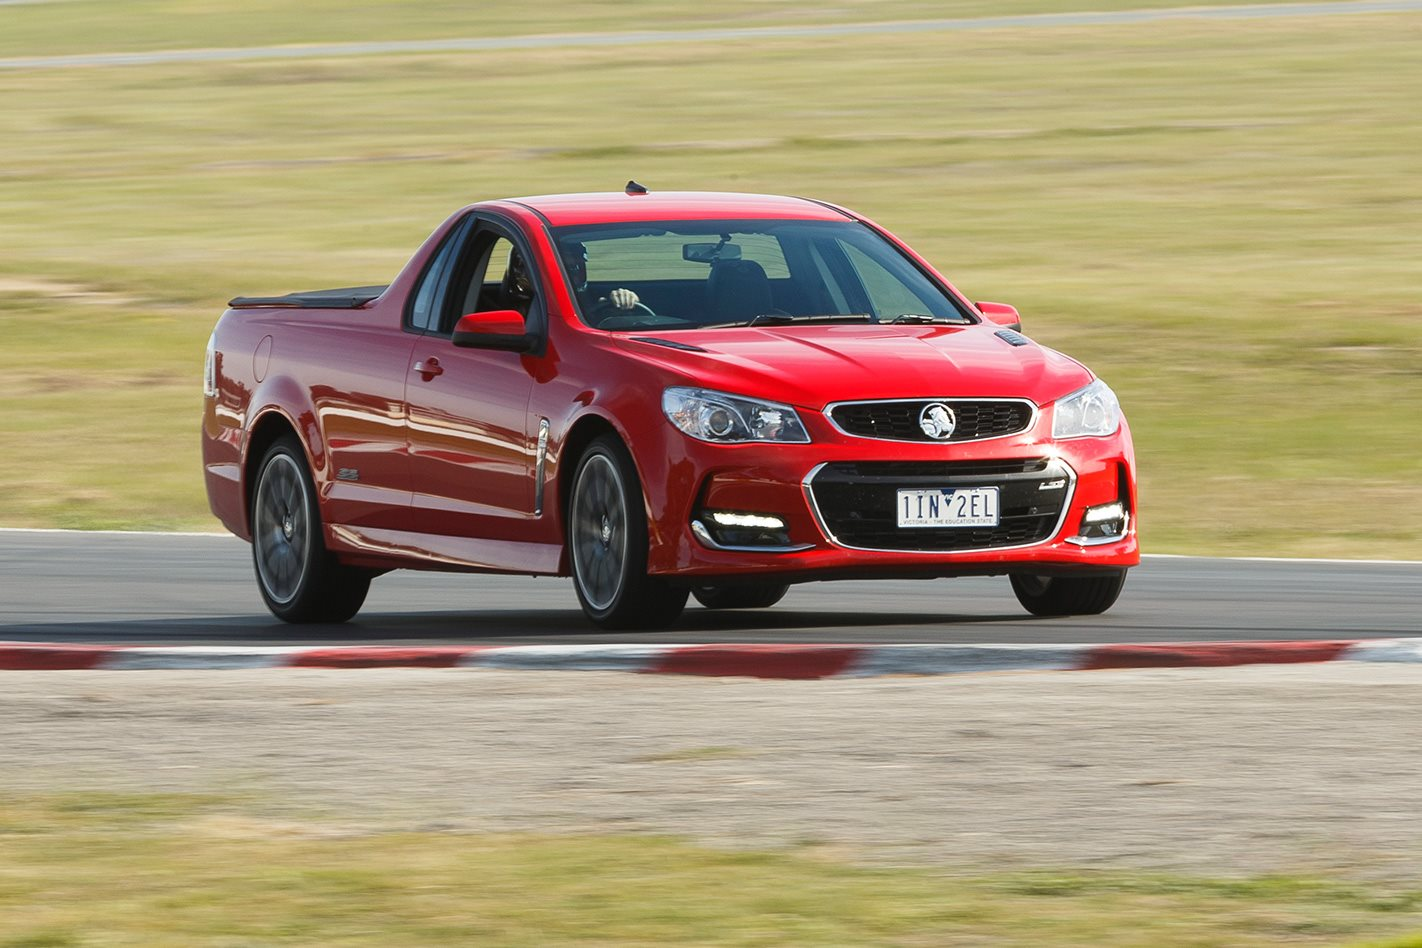 2017-Holden-Commodore-SS-Ute-driving.jpg